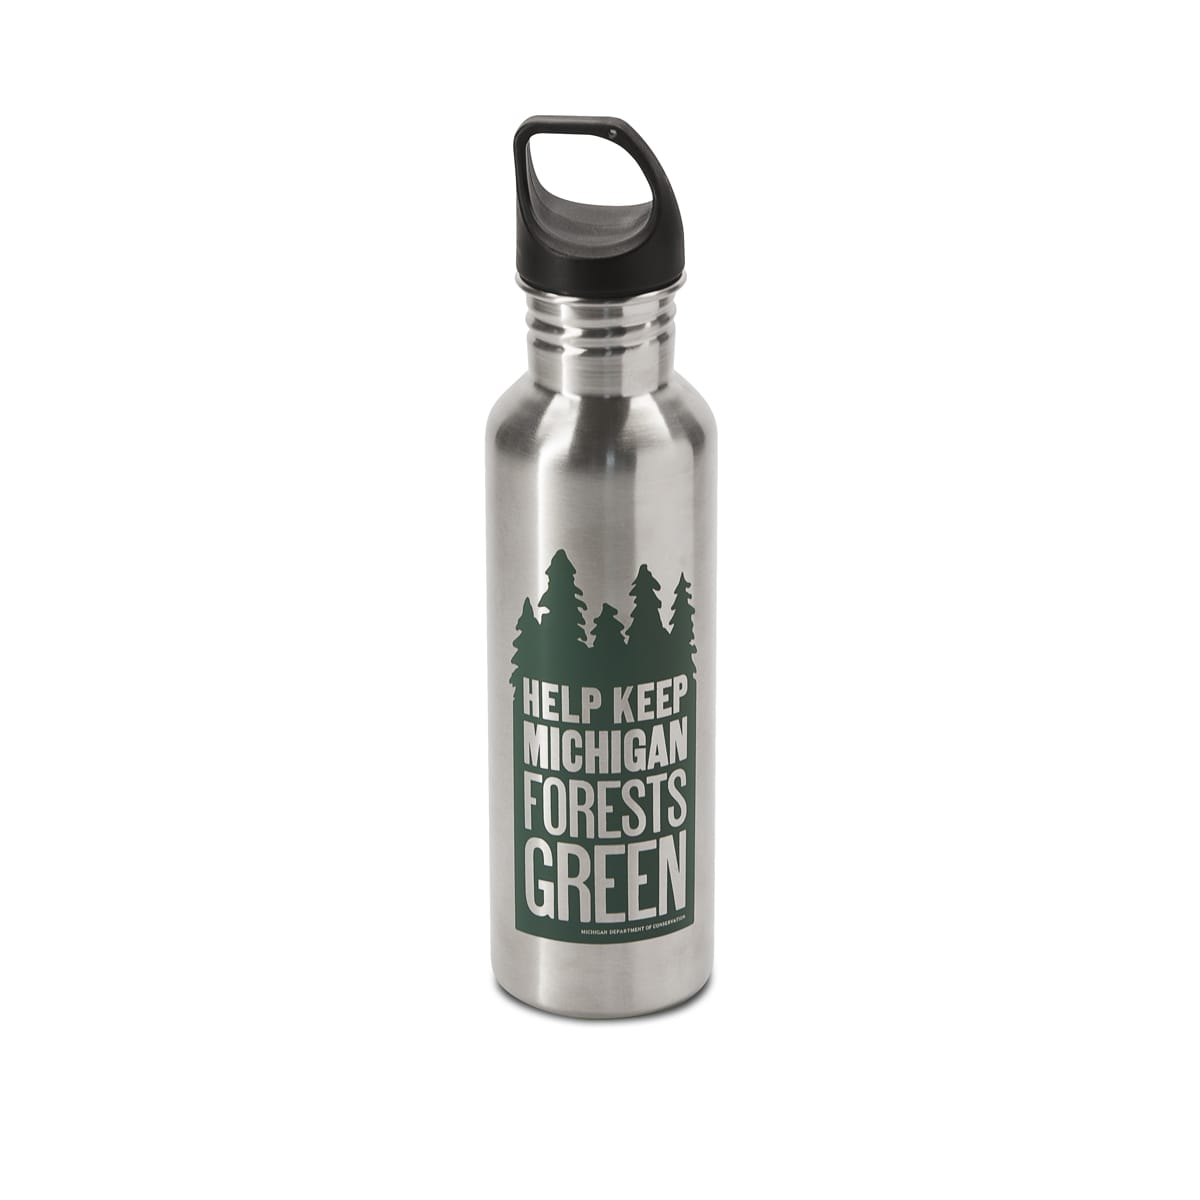 Help Keep Michigan Forests Green